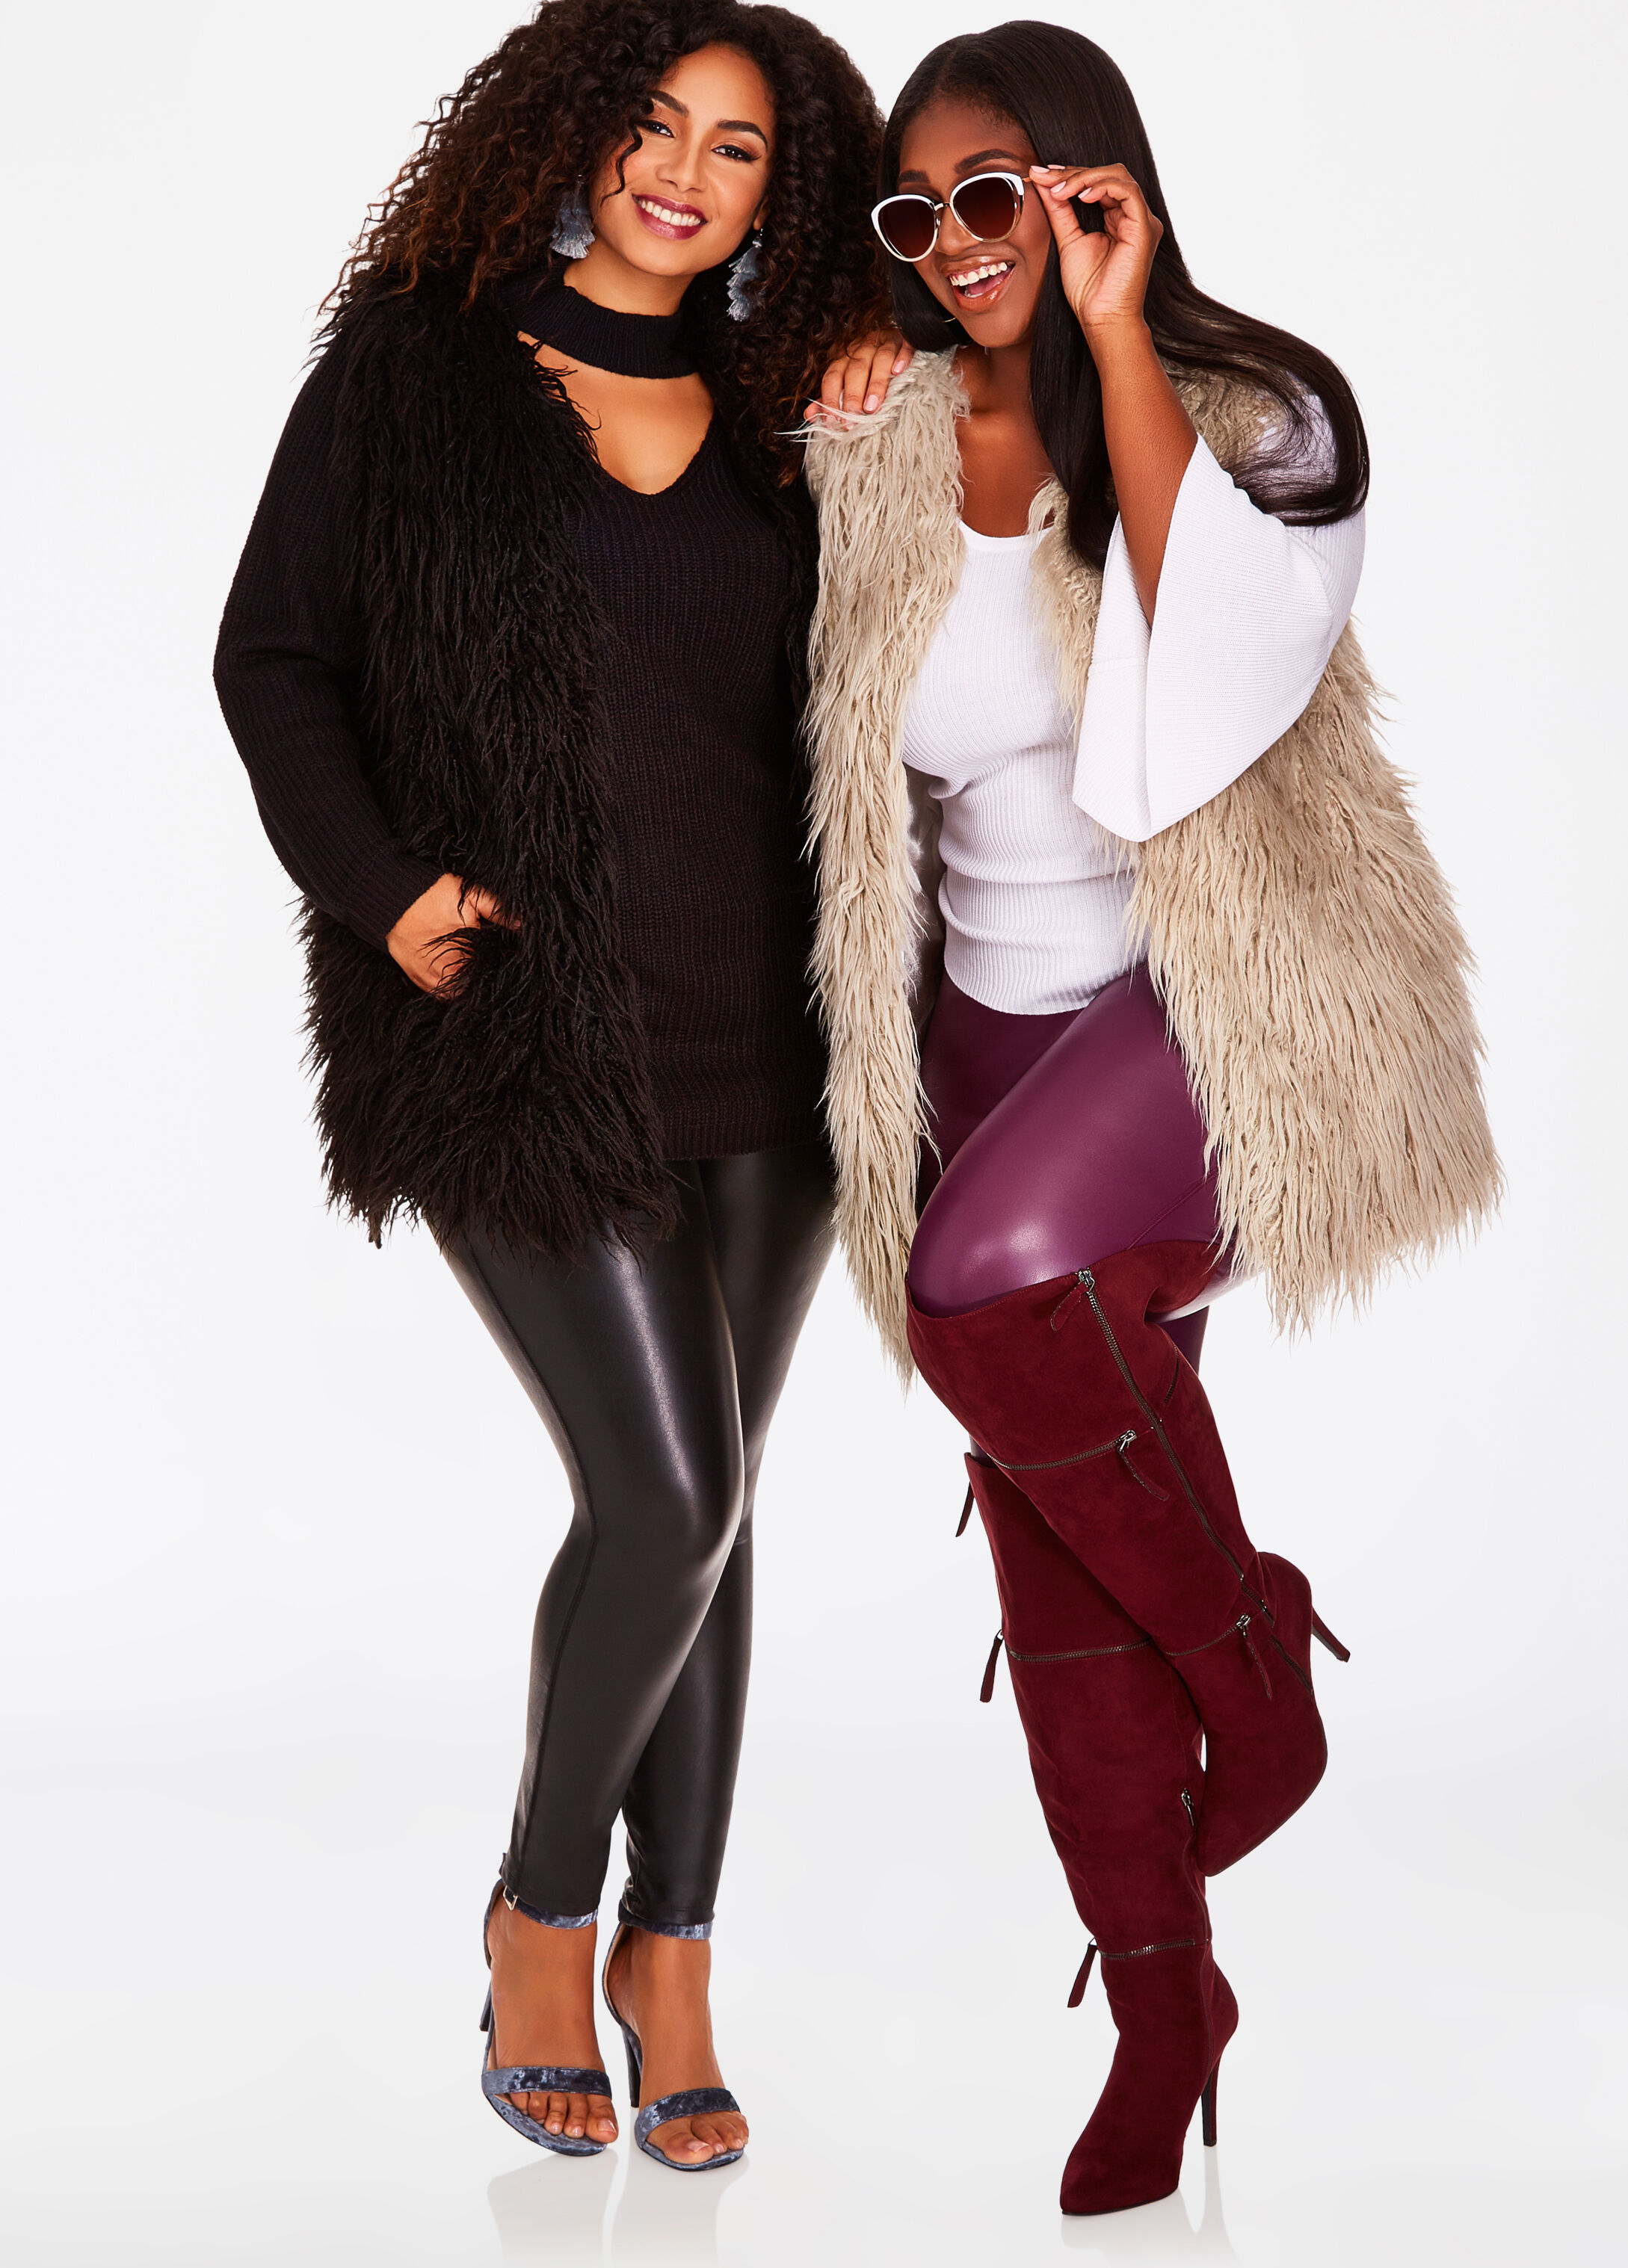 Plus Size Outfits - Besties_10-3-17